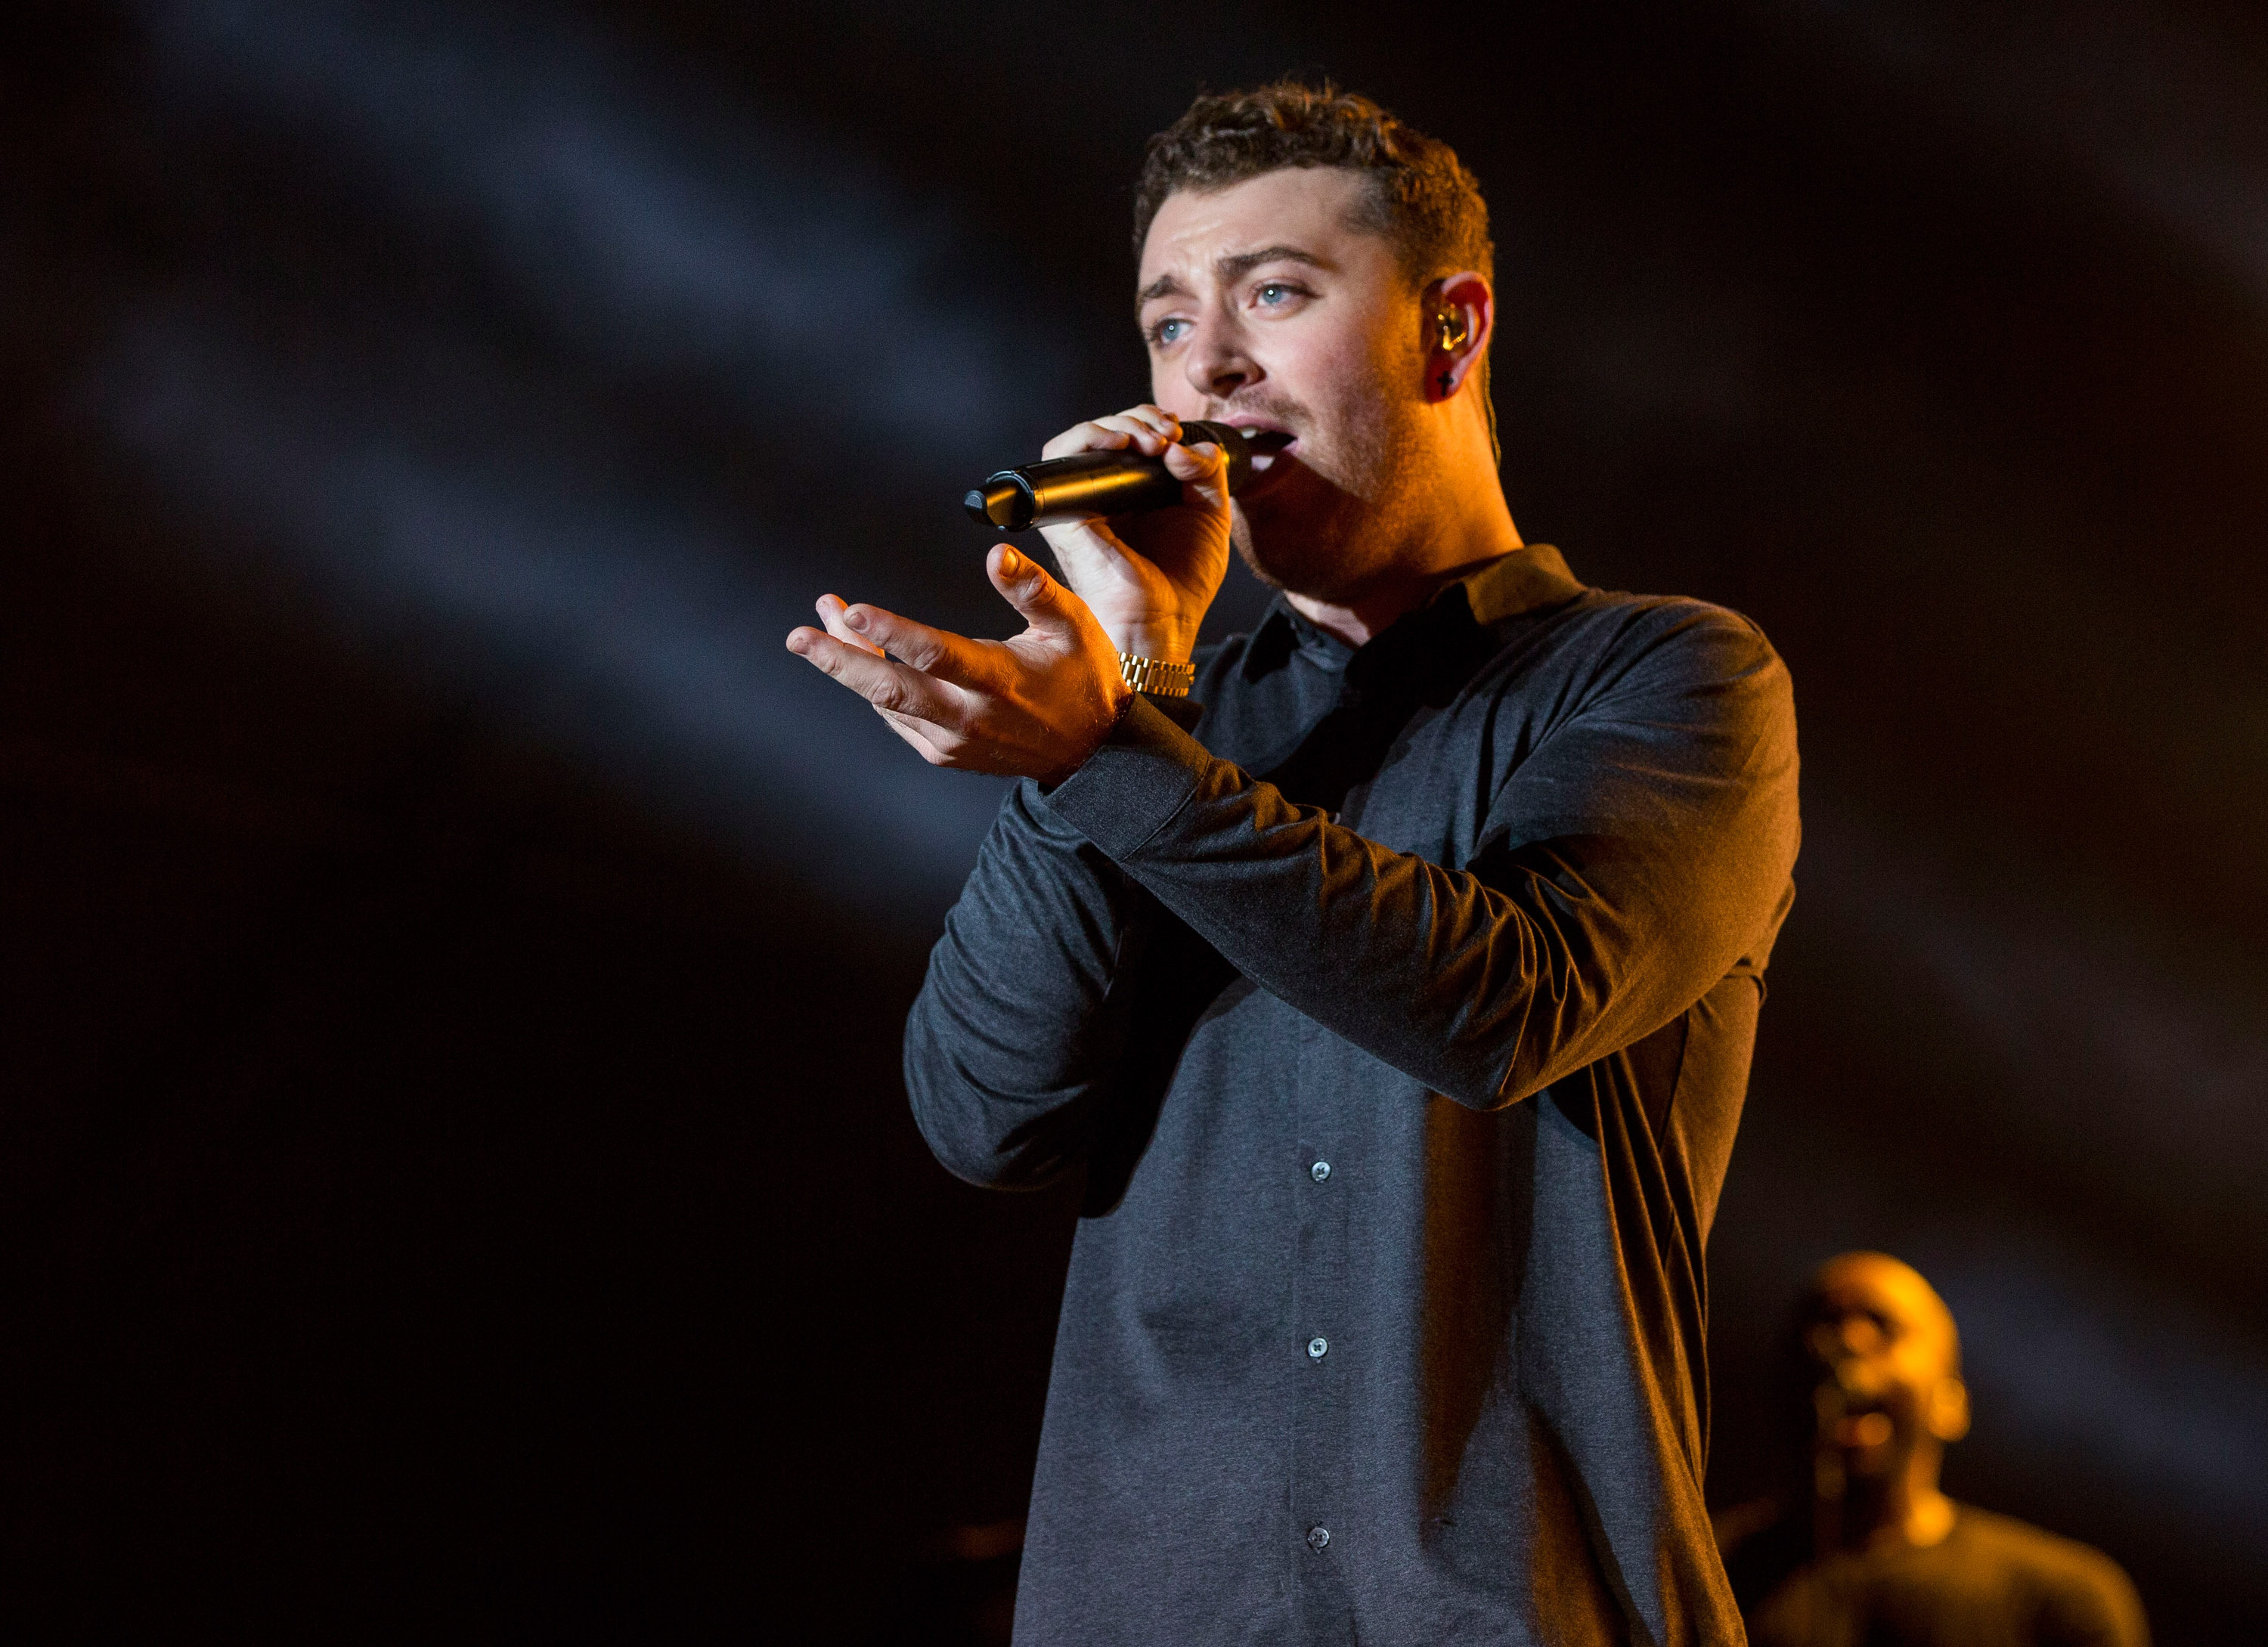 ATLANTA, GA - SEPTEMBER 19:  Sam Smith performs during Day 2 of 2015 Music Midtown at Piedmont Park on September 19, 2015 in